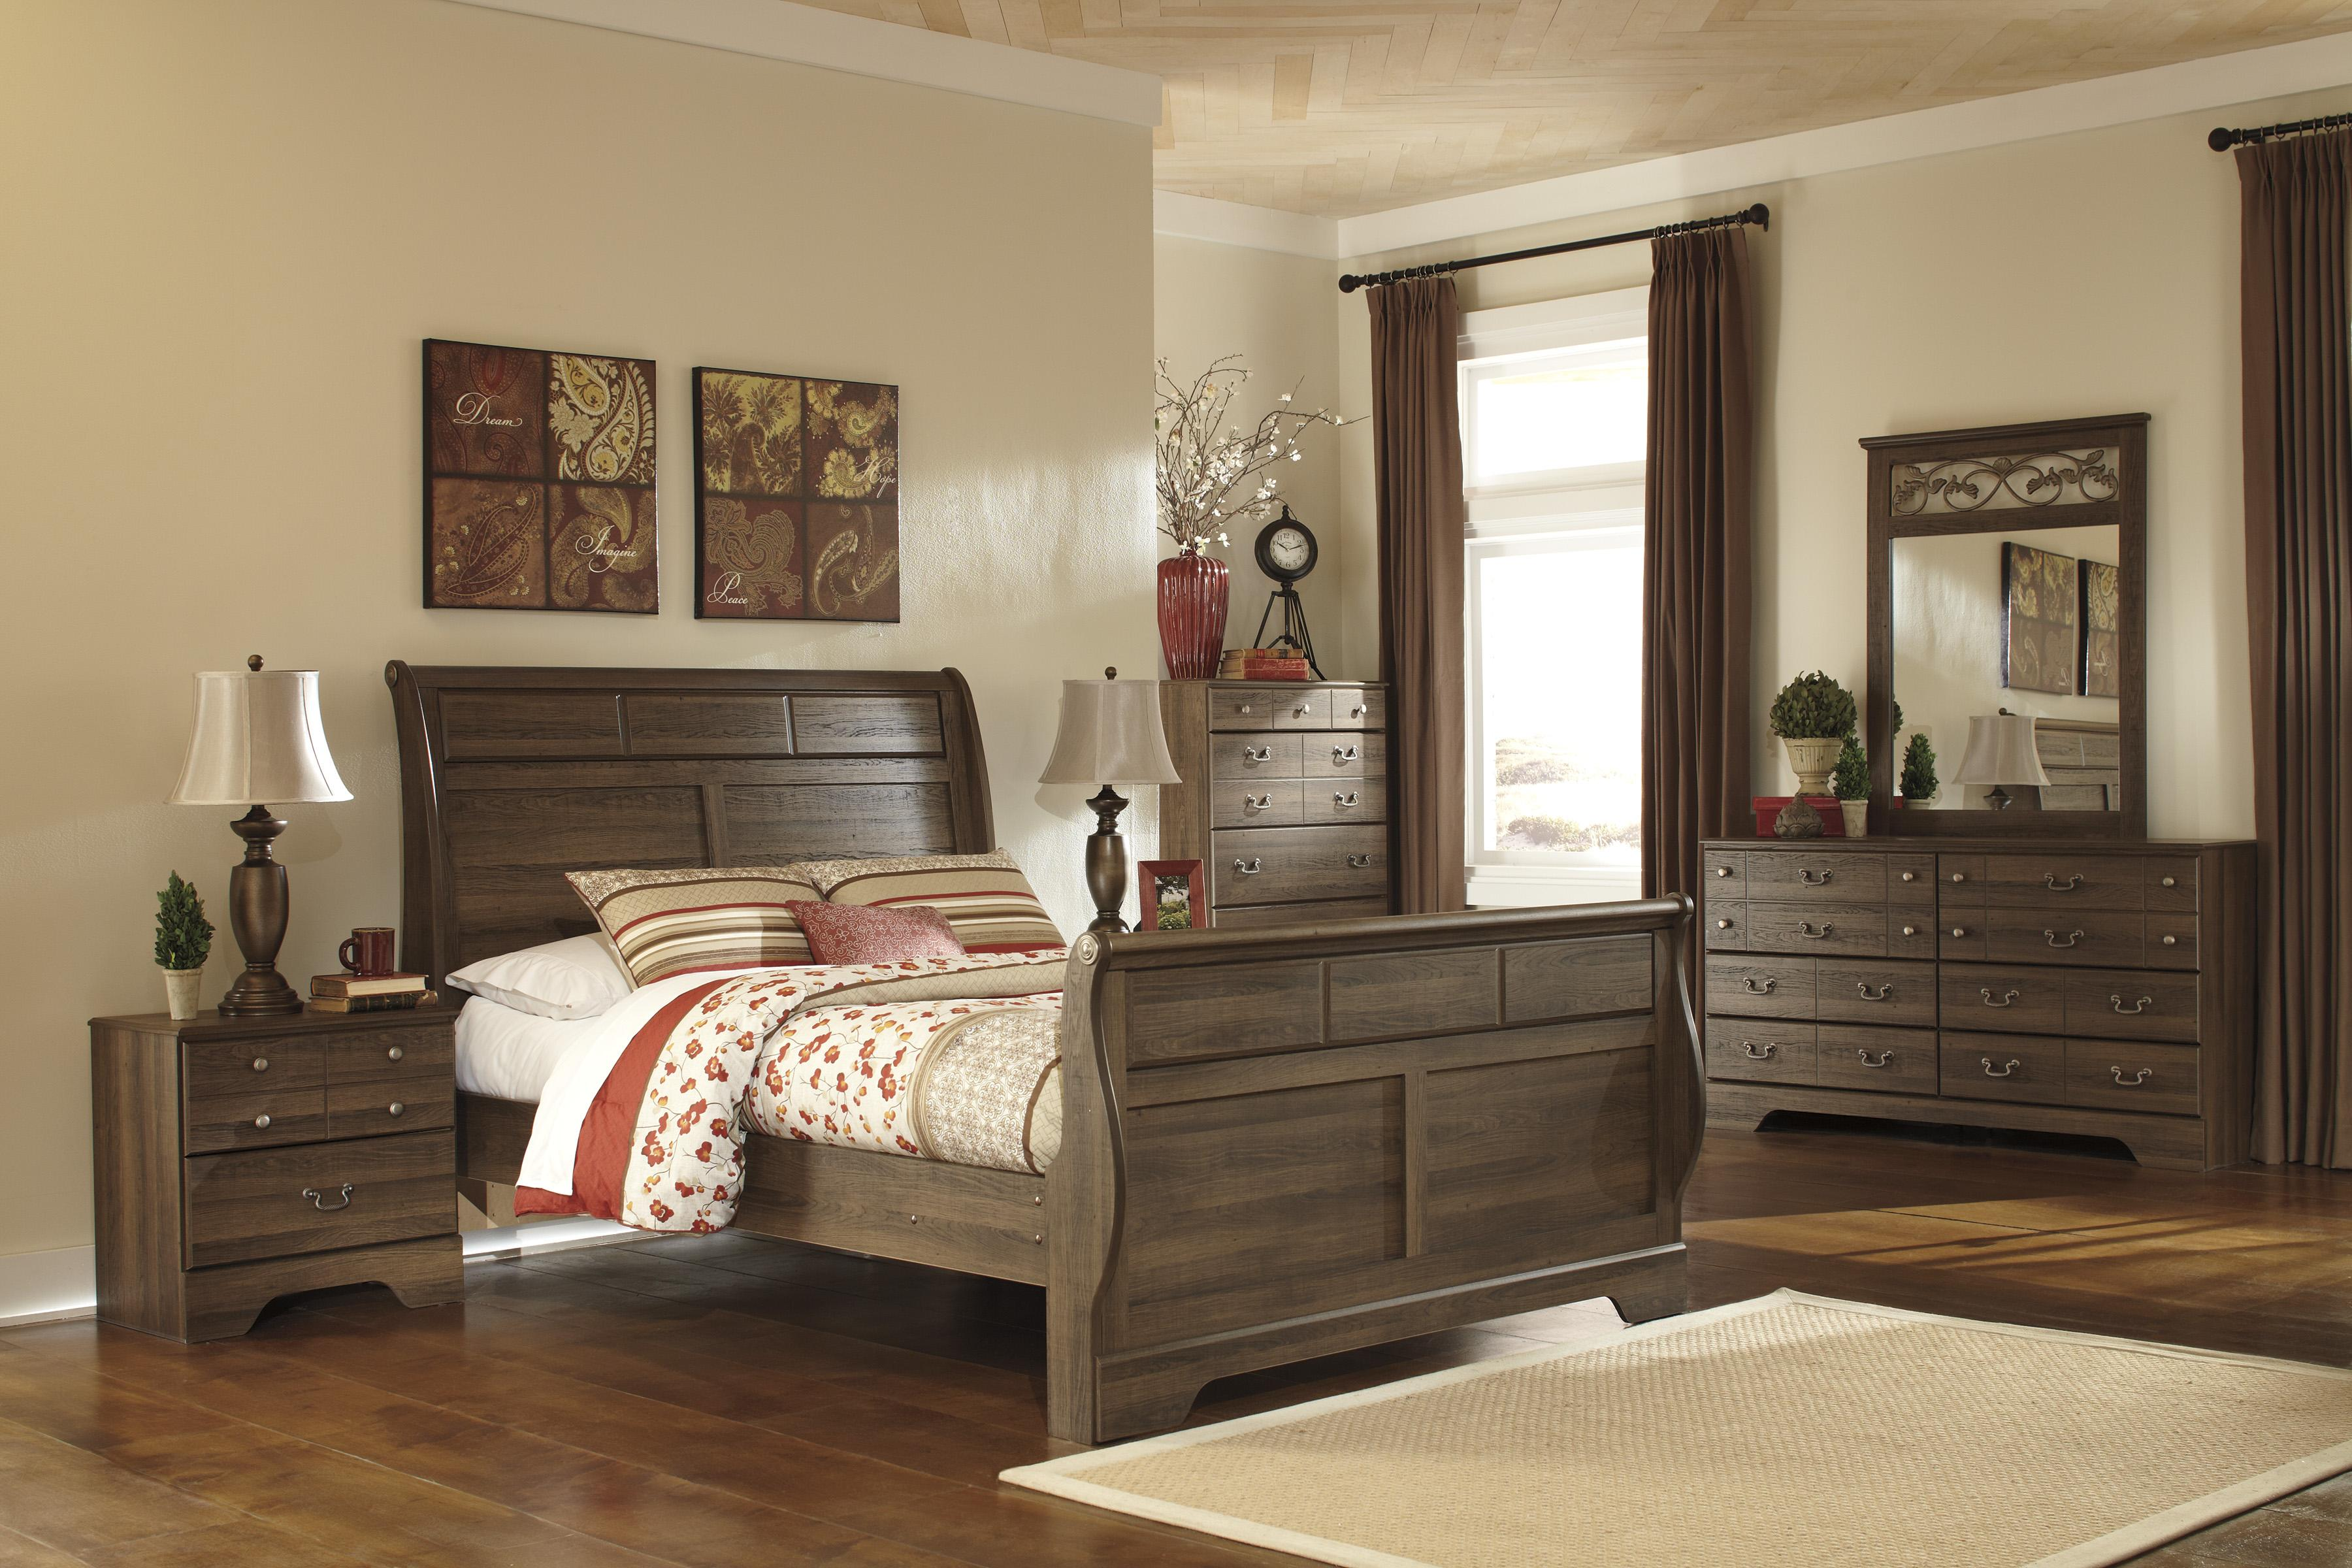 Signature Design by Ashley Allymore Queen Bedroom Group - Item Number: B216 Q Bedroom Group 1